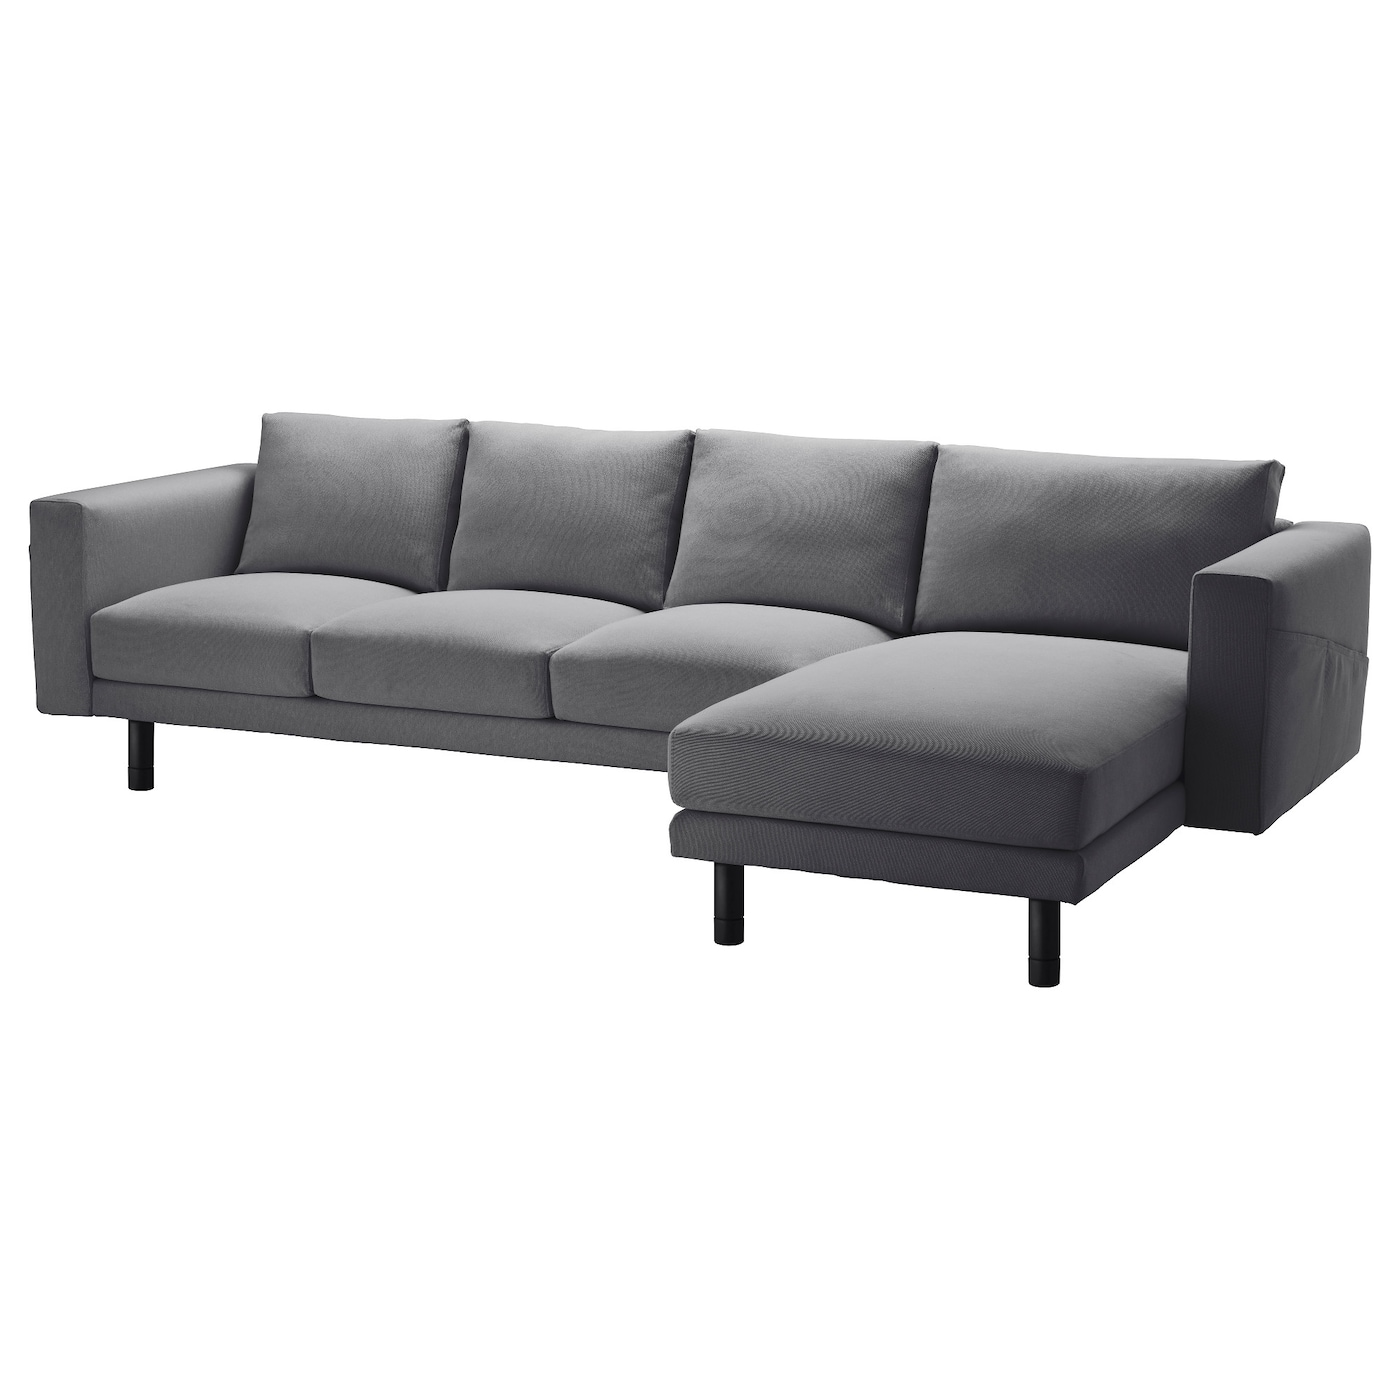 Norsborg three seat sofa and chaise longue finnsta dark for U sofa med chaiselong